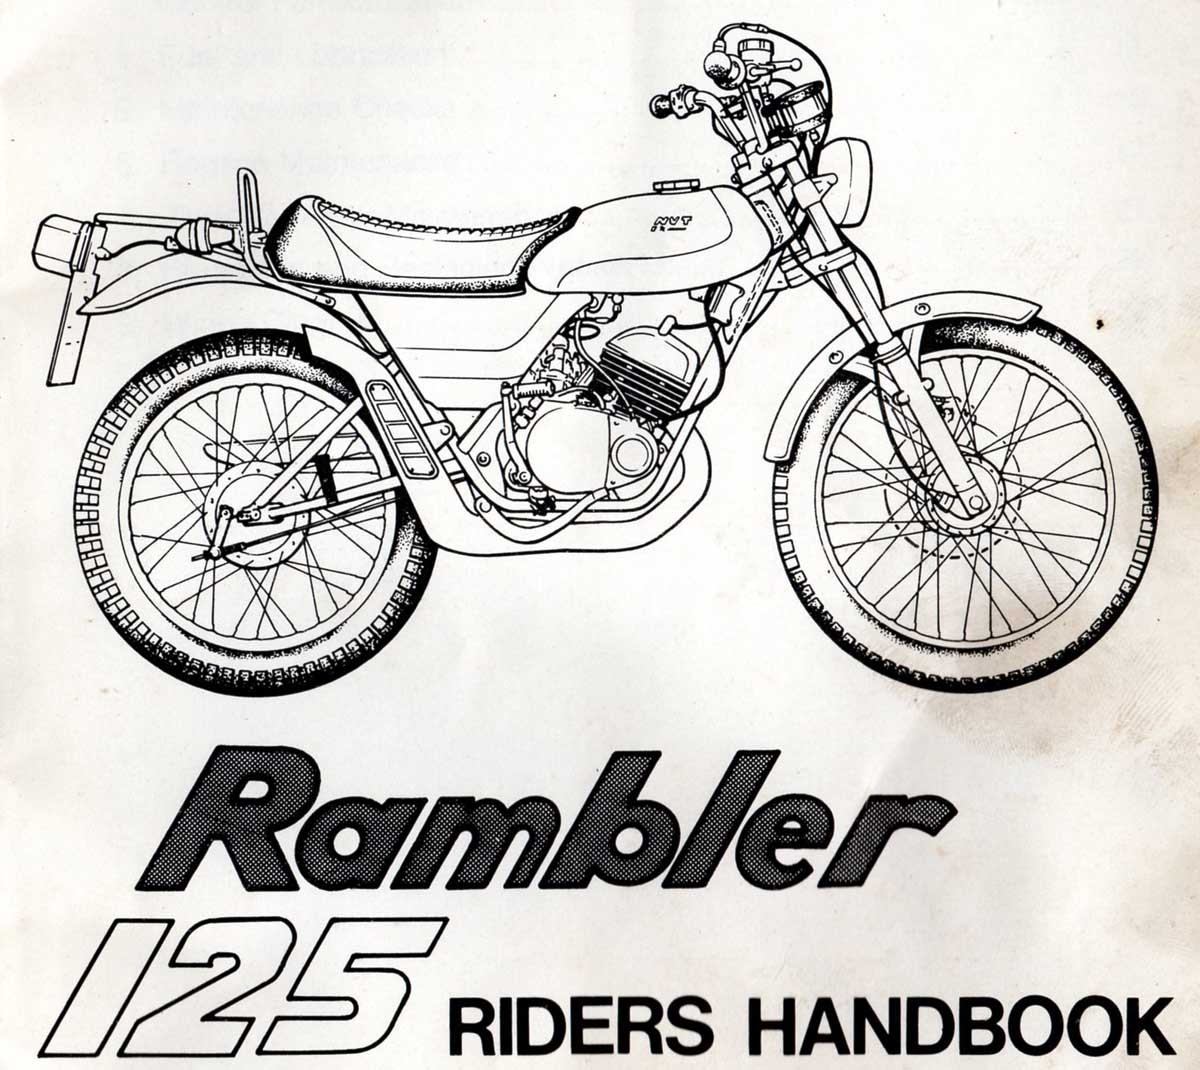 medium resolution of nvt riders handbook wiring diagram my motorcycle